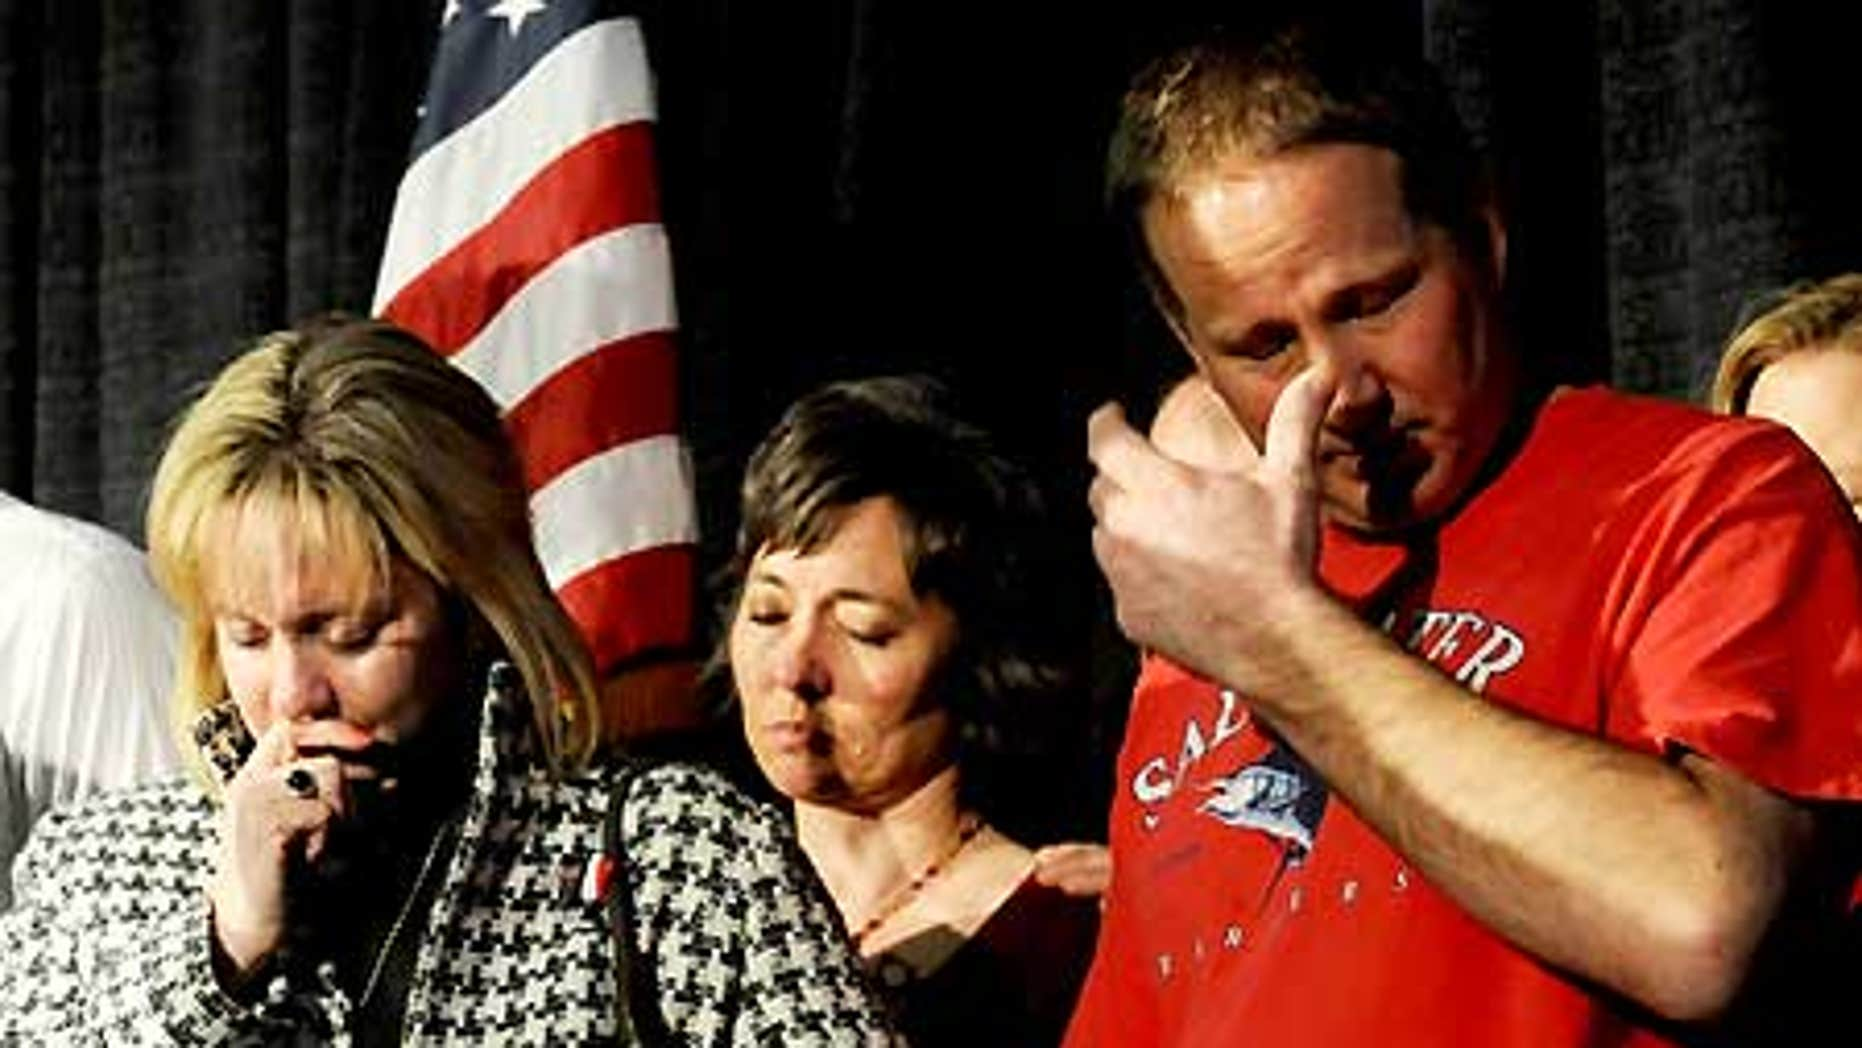 Feb. 18: Lisa Allen and her husband Jim Allen react during a welcome home rally at the Hospitality Room at the Amarillo Civic Center.